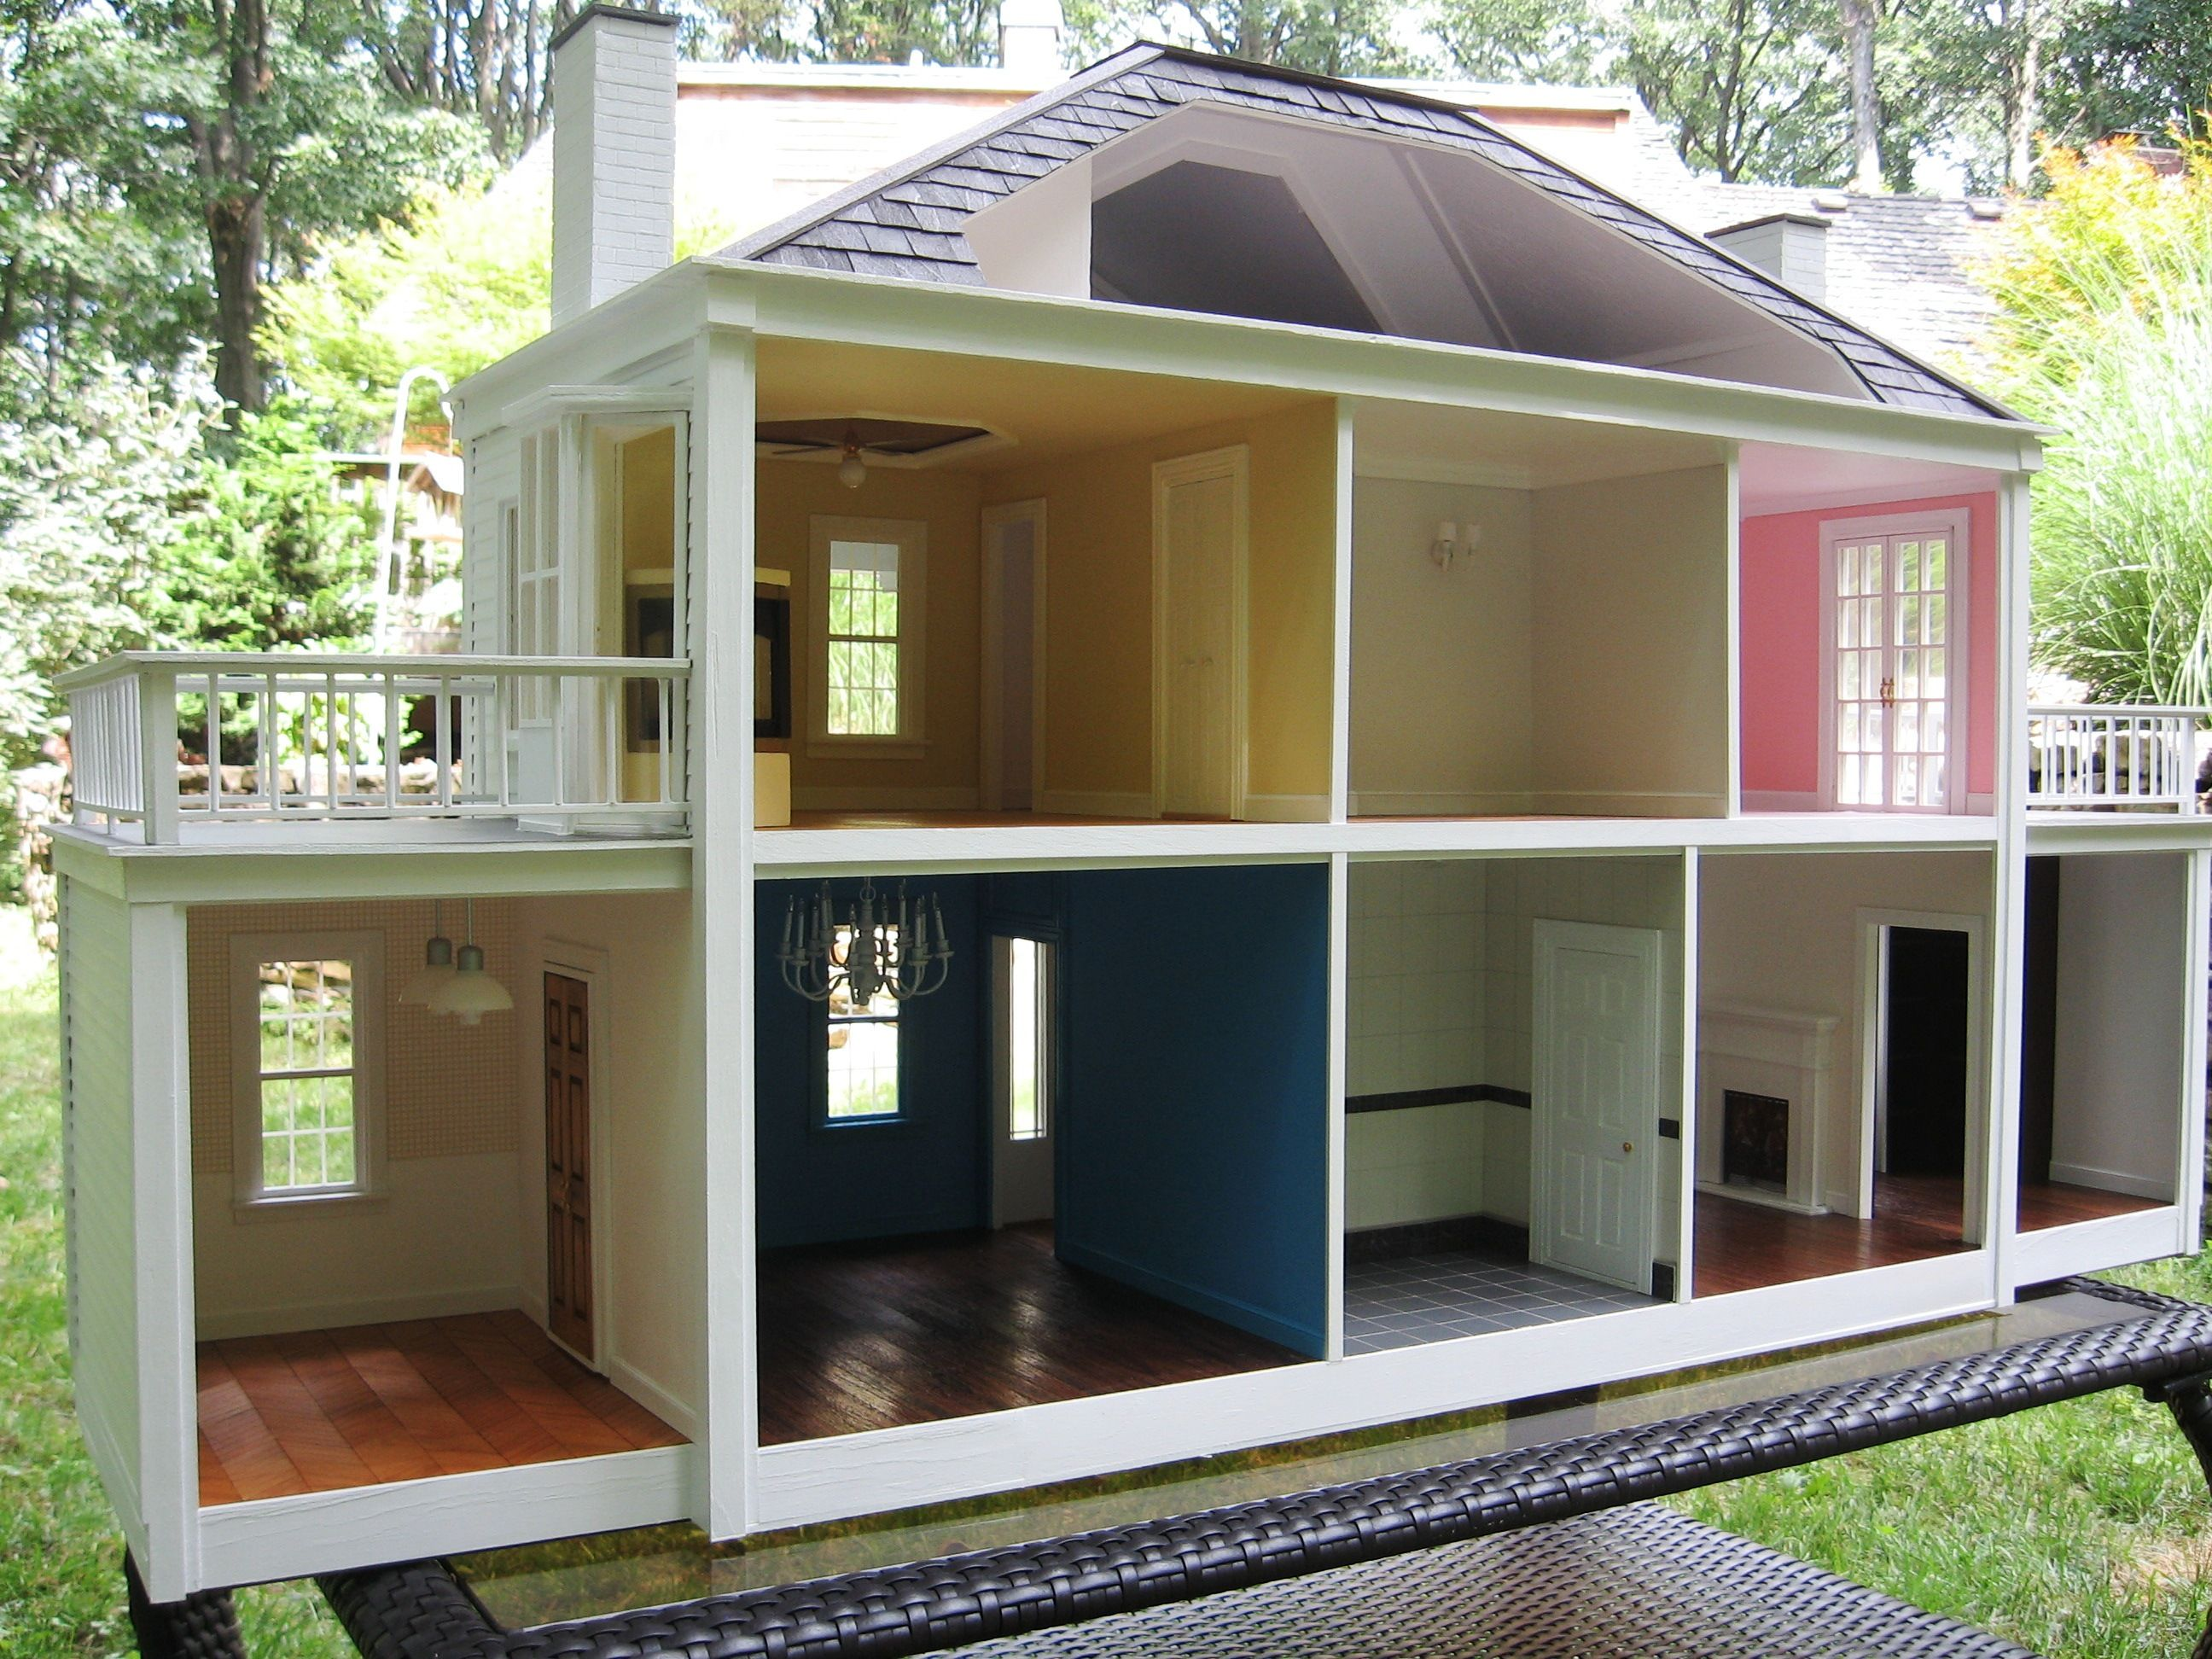 Dollhouse decorating ideas barbie houses pinterest for House decorating ideas